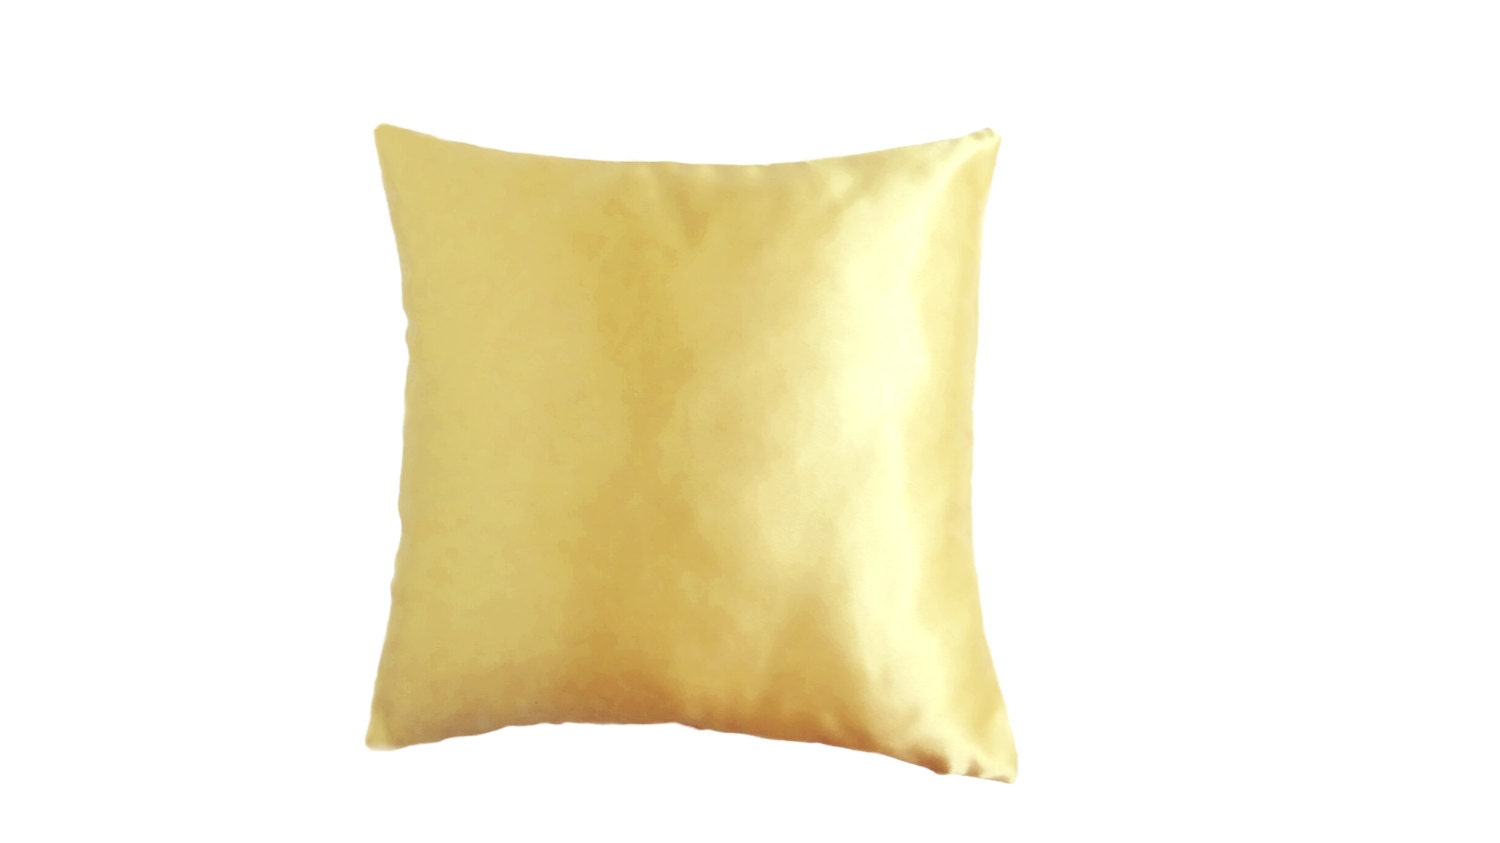 Beige Throw Pillow Covers : Golden Beige Pillow Covers Satin Throw Pillow by AnnushkaHomeDecor